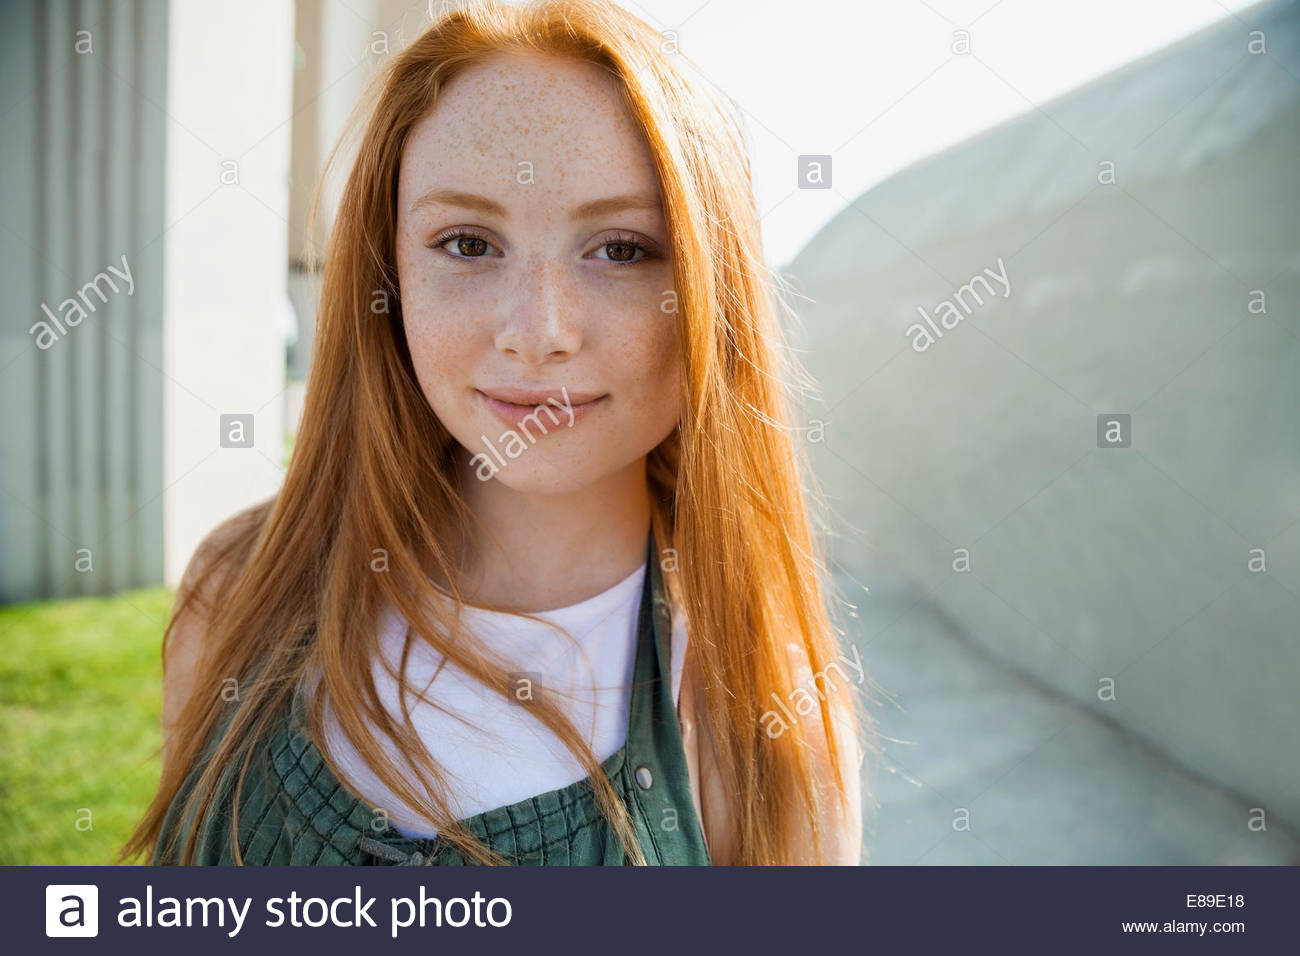 Close up portrait of teenage girl - Stock Image